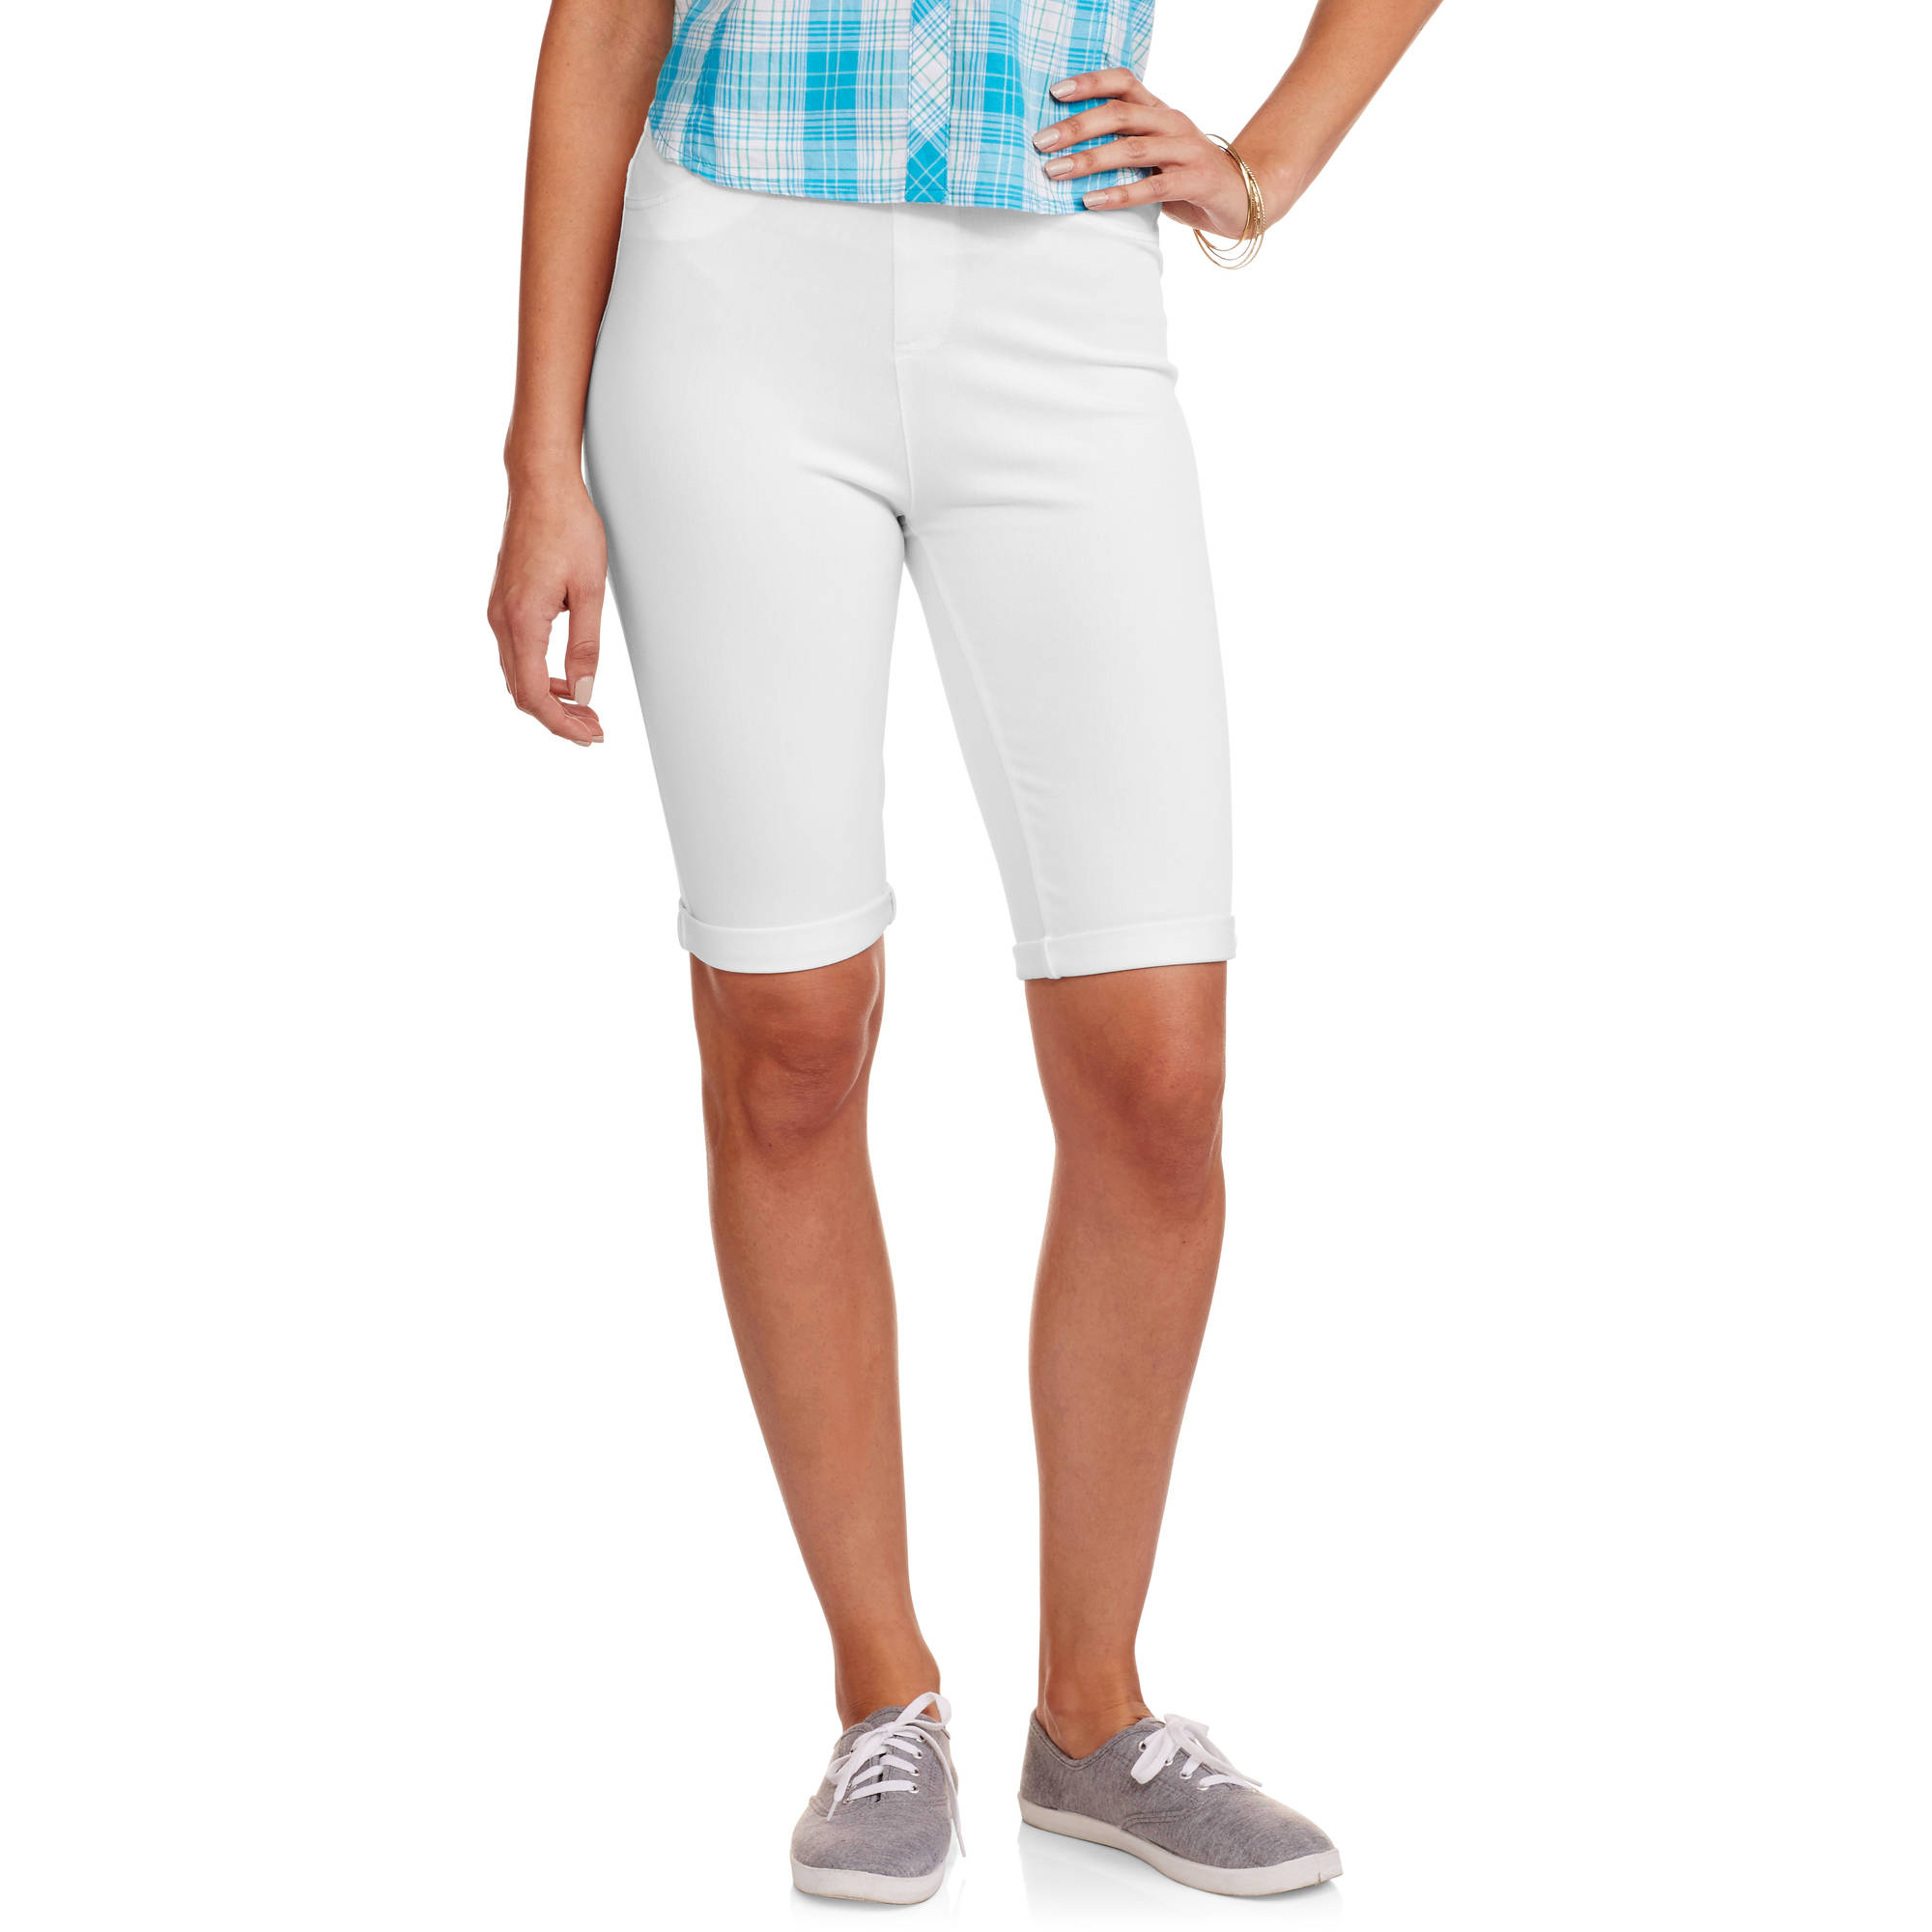 bermuda shorts for women